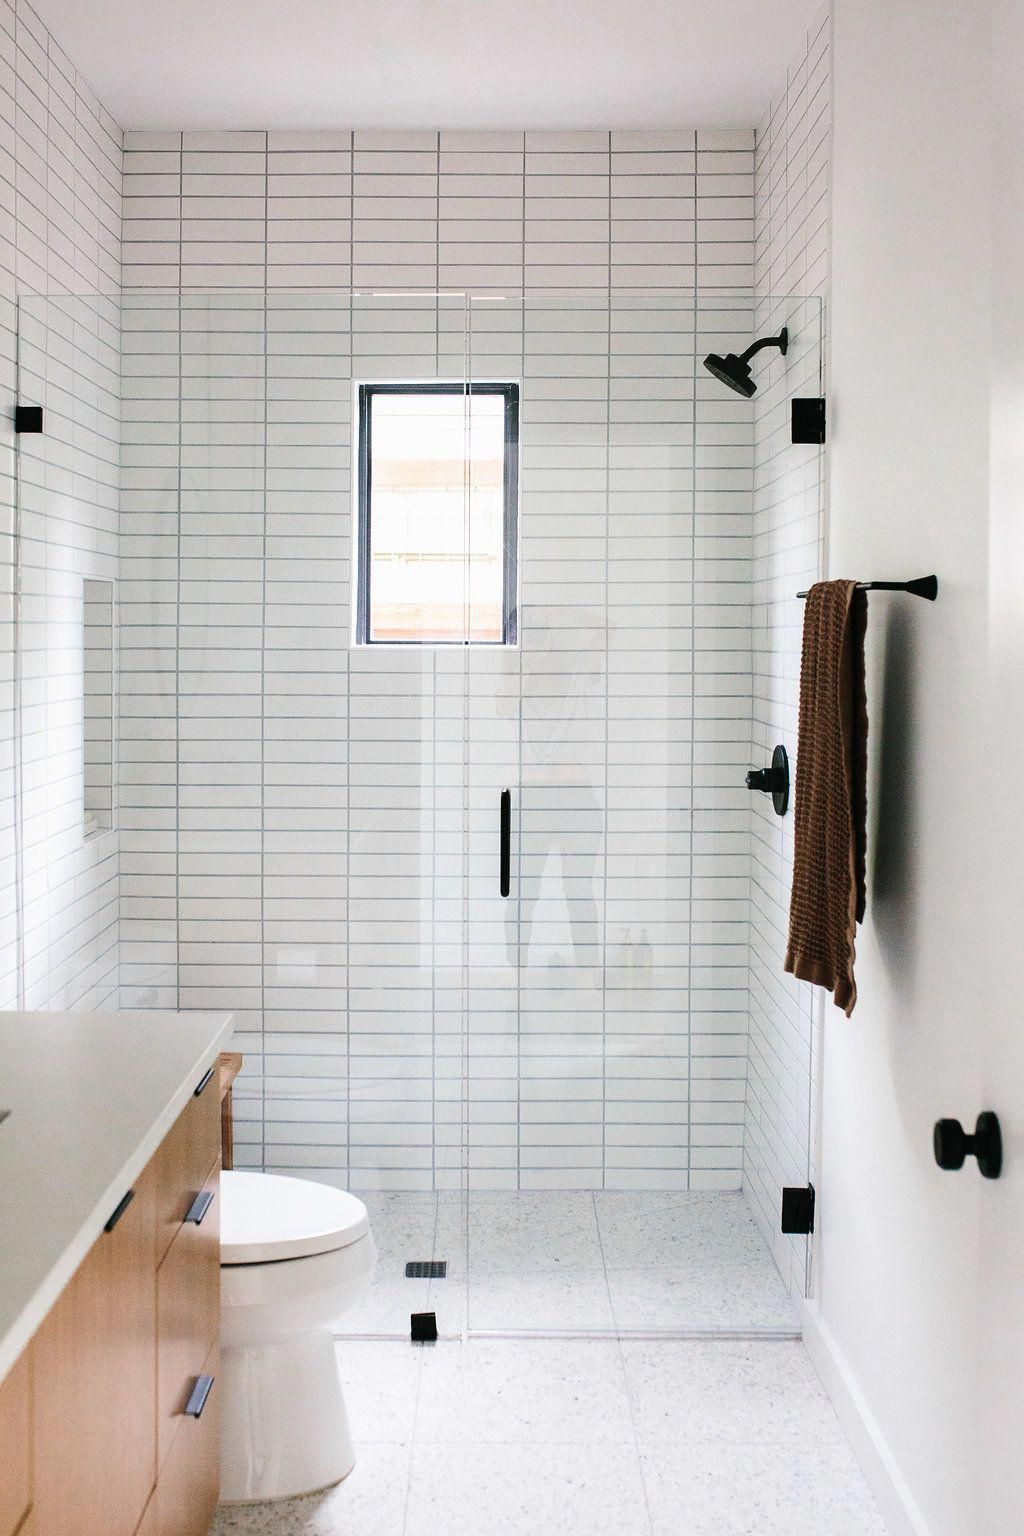 How Much Space Do You Need For A Bathroom Vanity Bathroom Interior Bathroom Interior Design Guest Bathroom